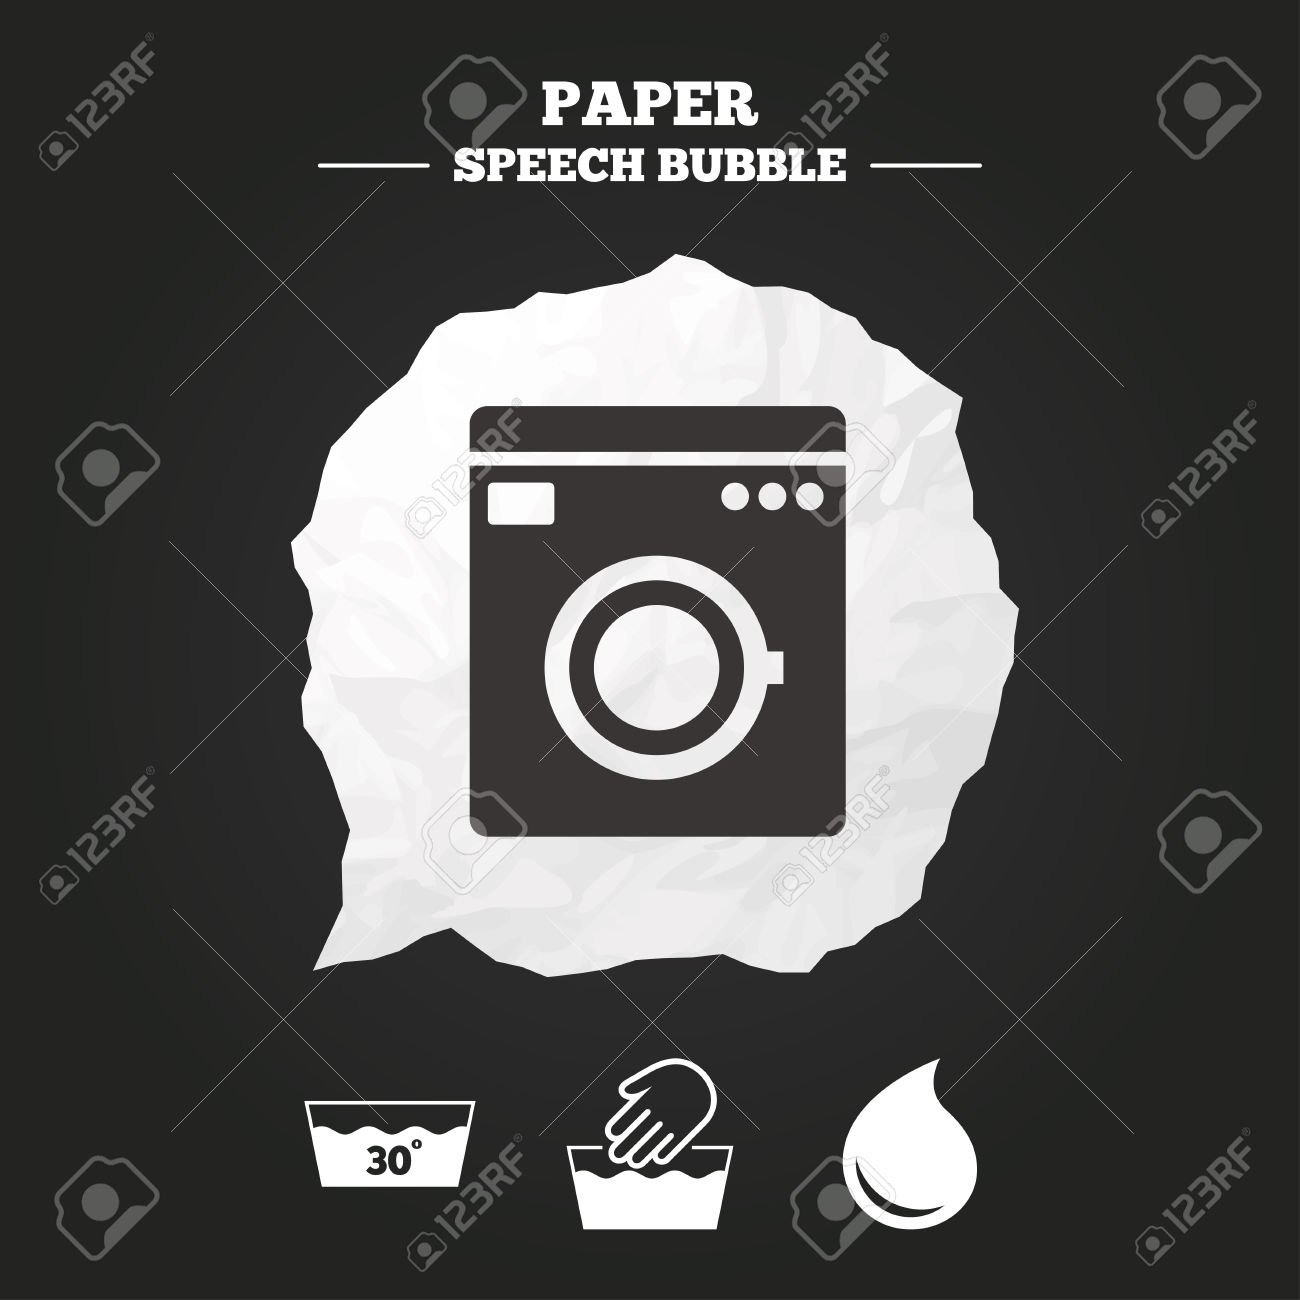 House clipart washed out clip transparent library House clipart washed out - ClipartFest clip transparent library